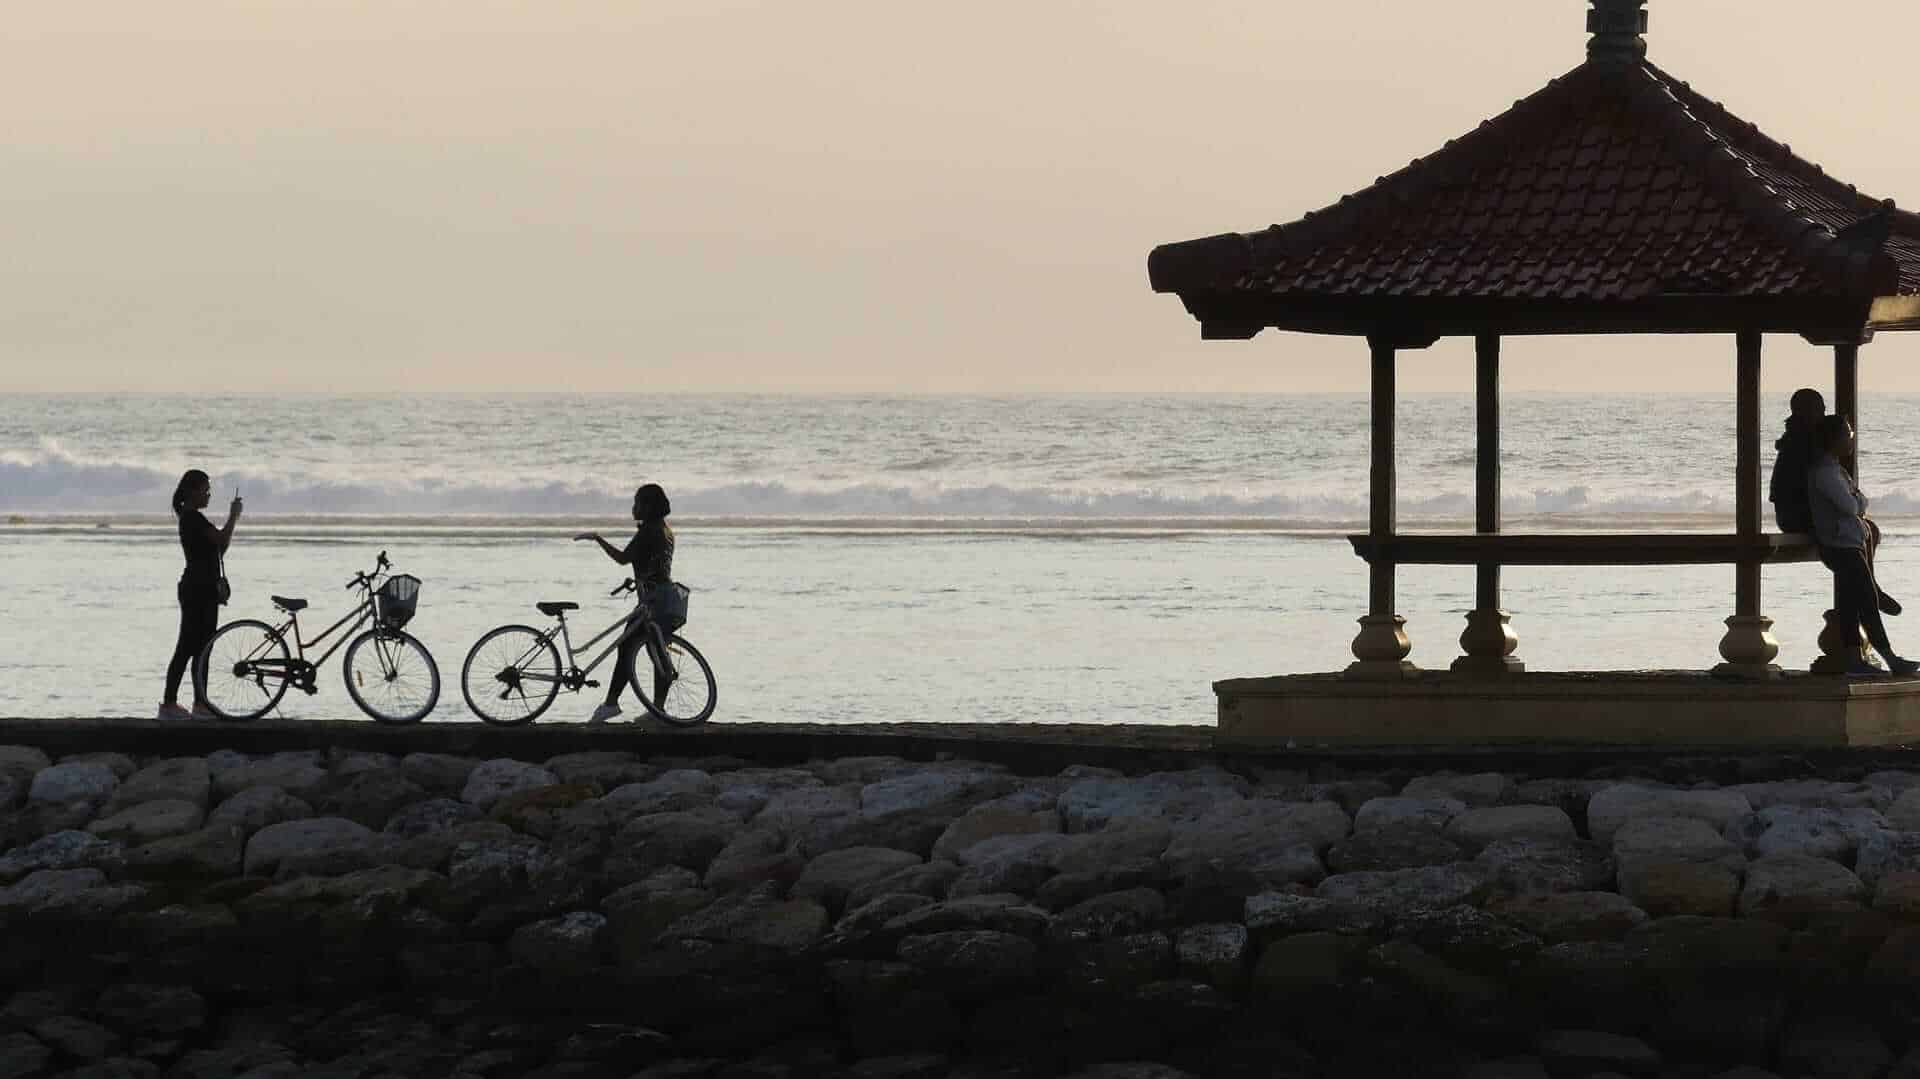 Bicycling in Bali, Indonesia